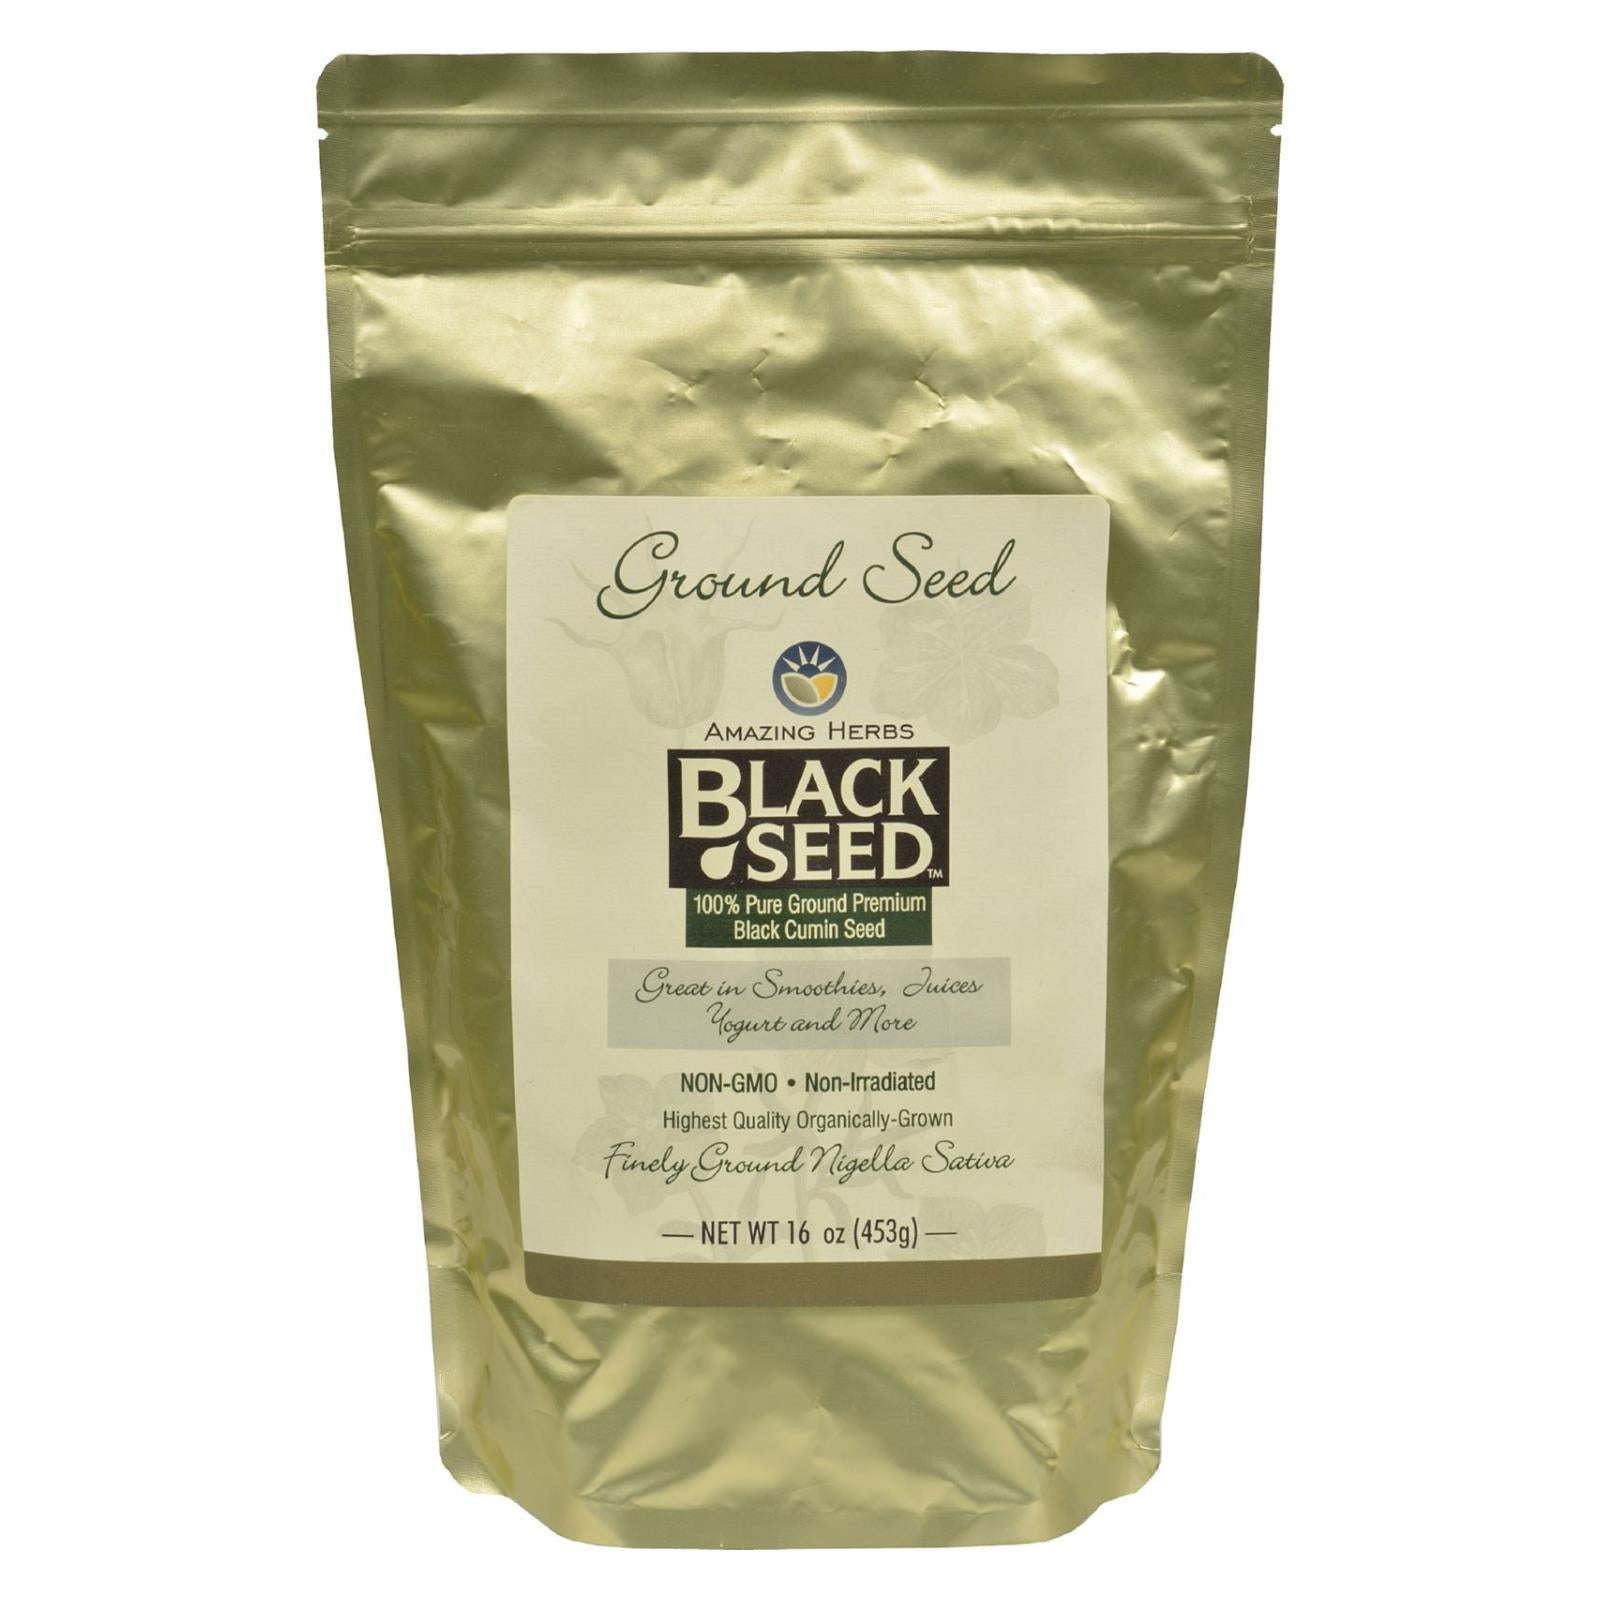 Buy Amazing Herbs Black Seed Ground Seed - 16 oz - Fibers and Seeds from Veroeco.com